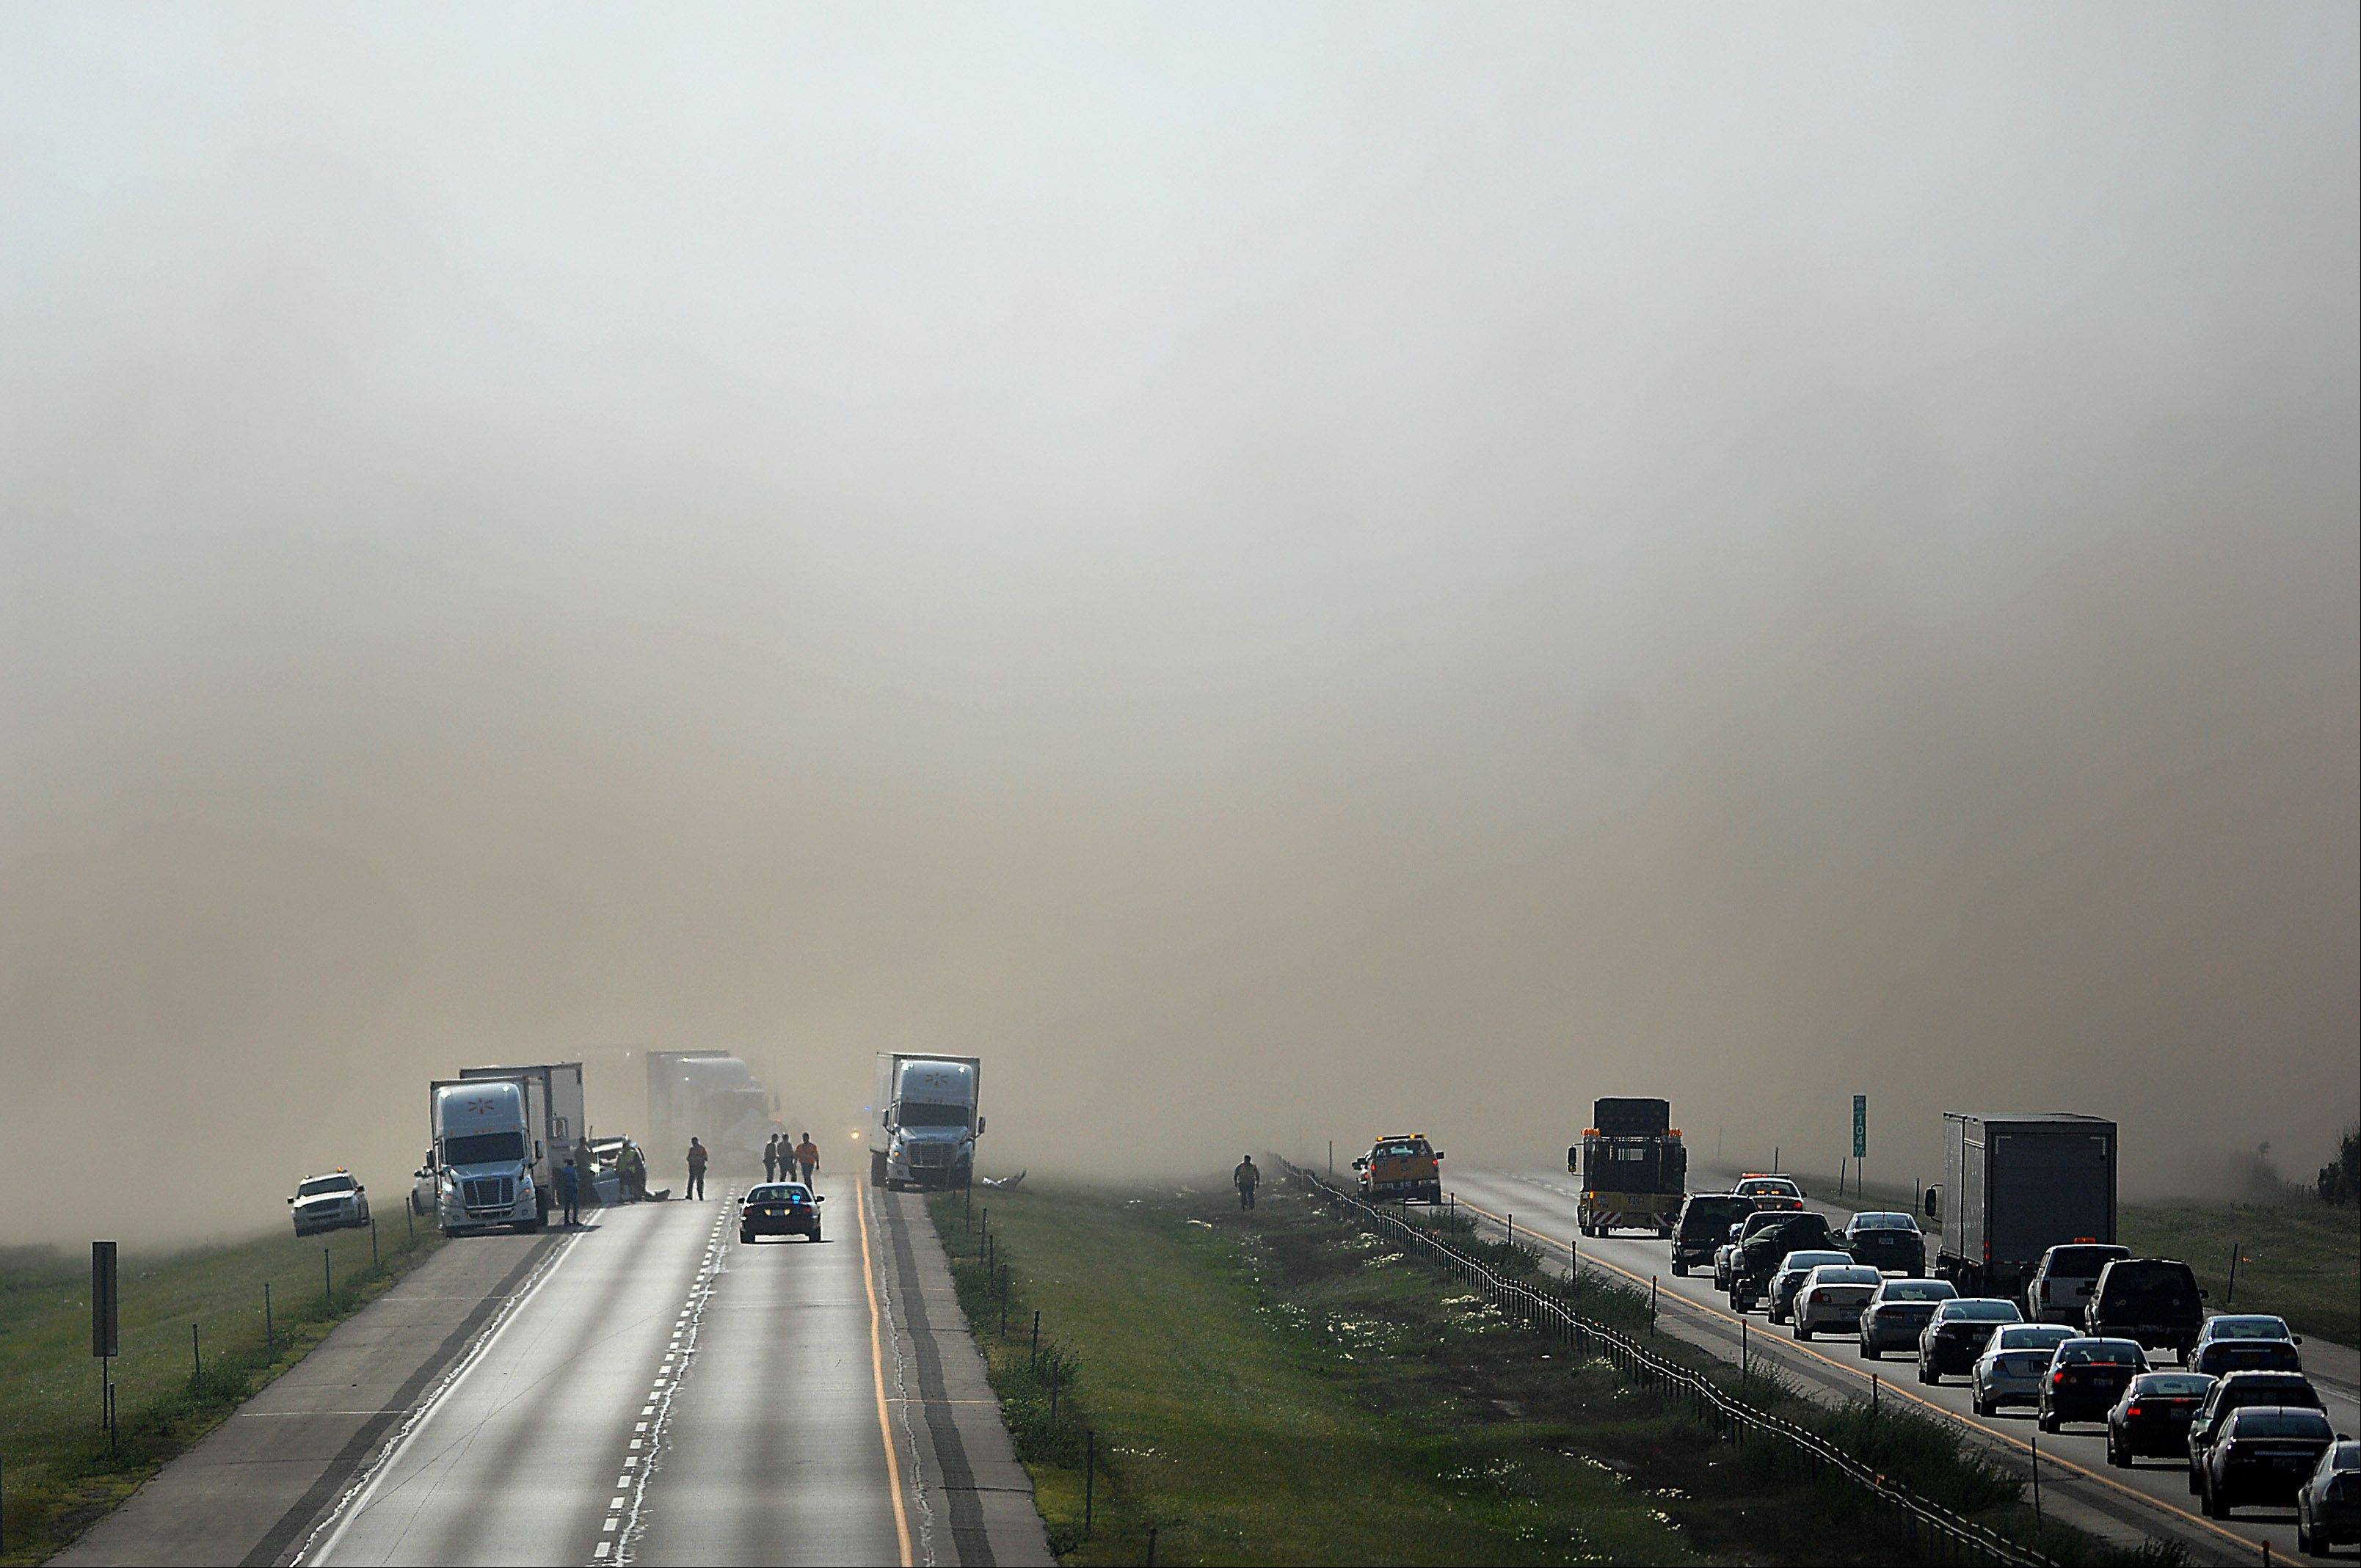 Eastbound I-88 near Dauberman Road in Kane County was shut down as police investigated an accident. High winds create a wall of dust that closed both lanes temporarily.